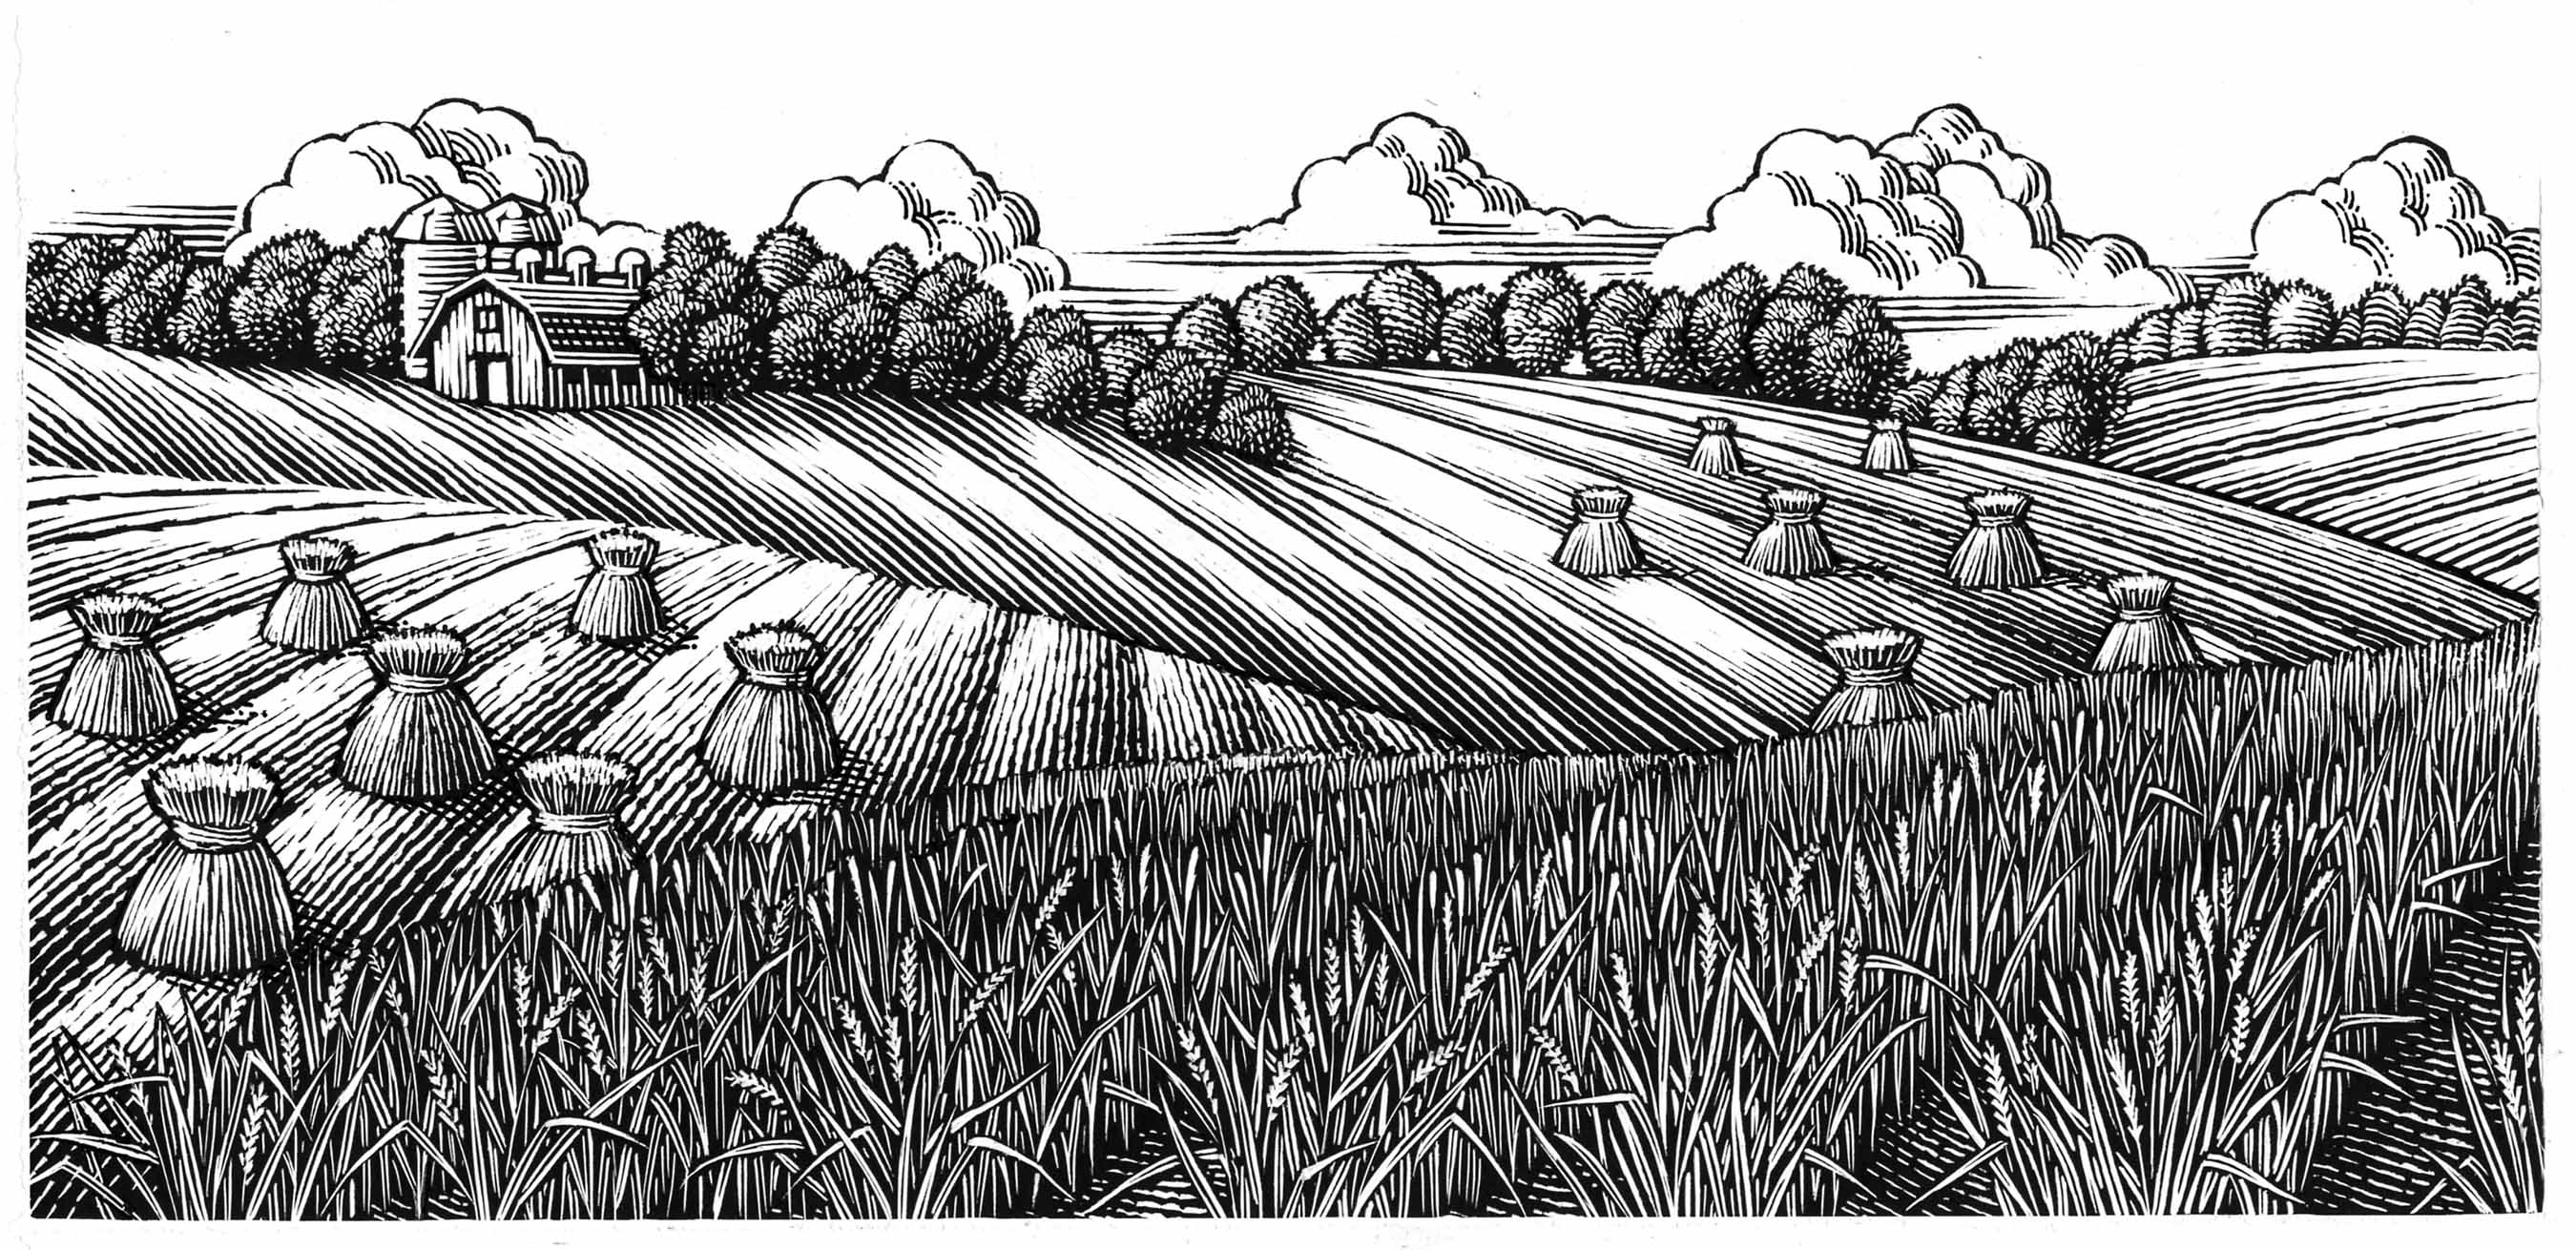 Line art, line engraving style illustration of rolling farm fields by Keith Ward